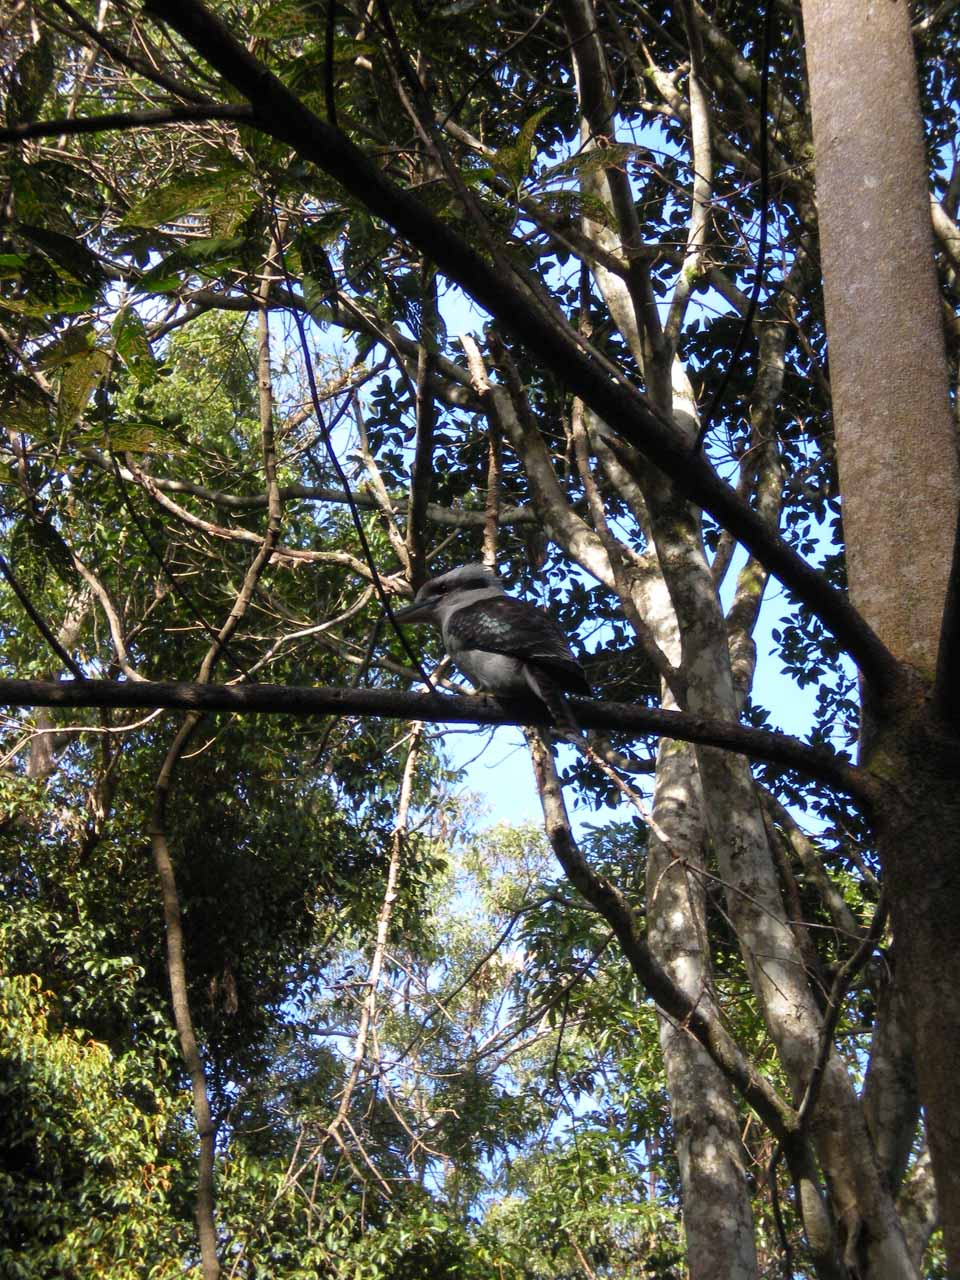 Looking up at some bird along the start of the Kondalilla Falls Walk